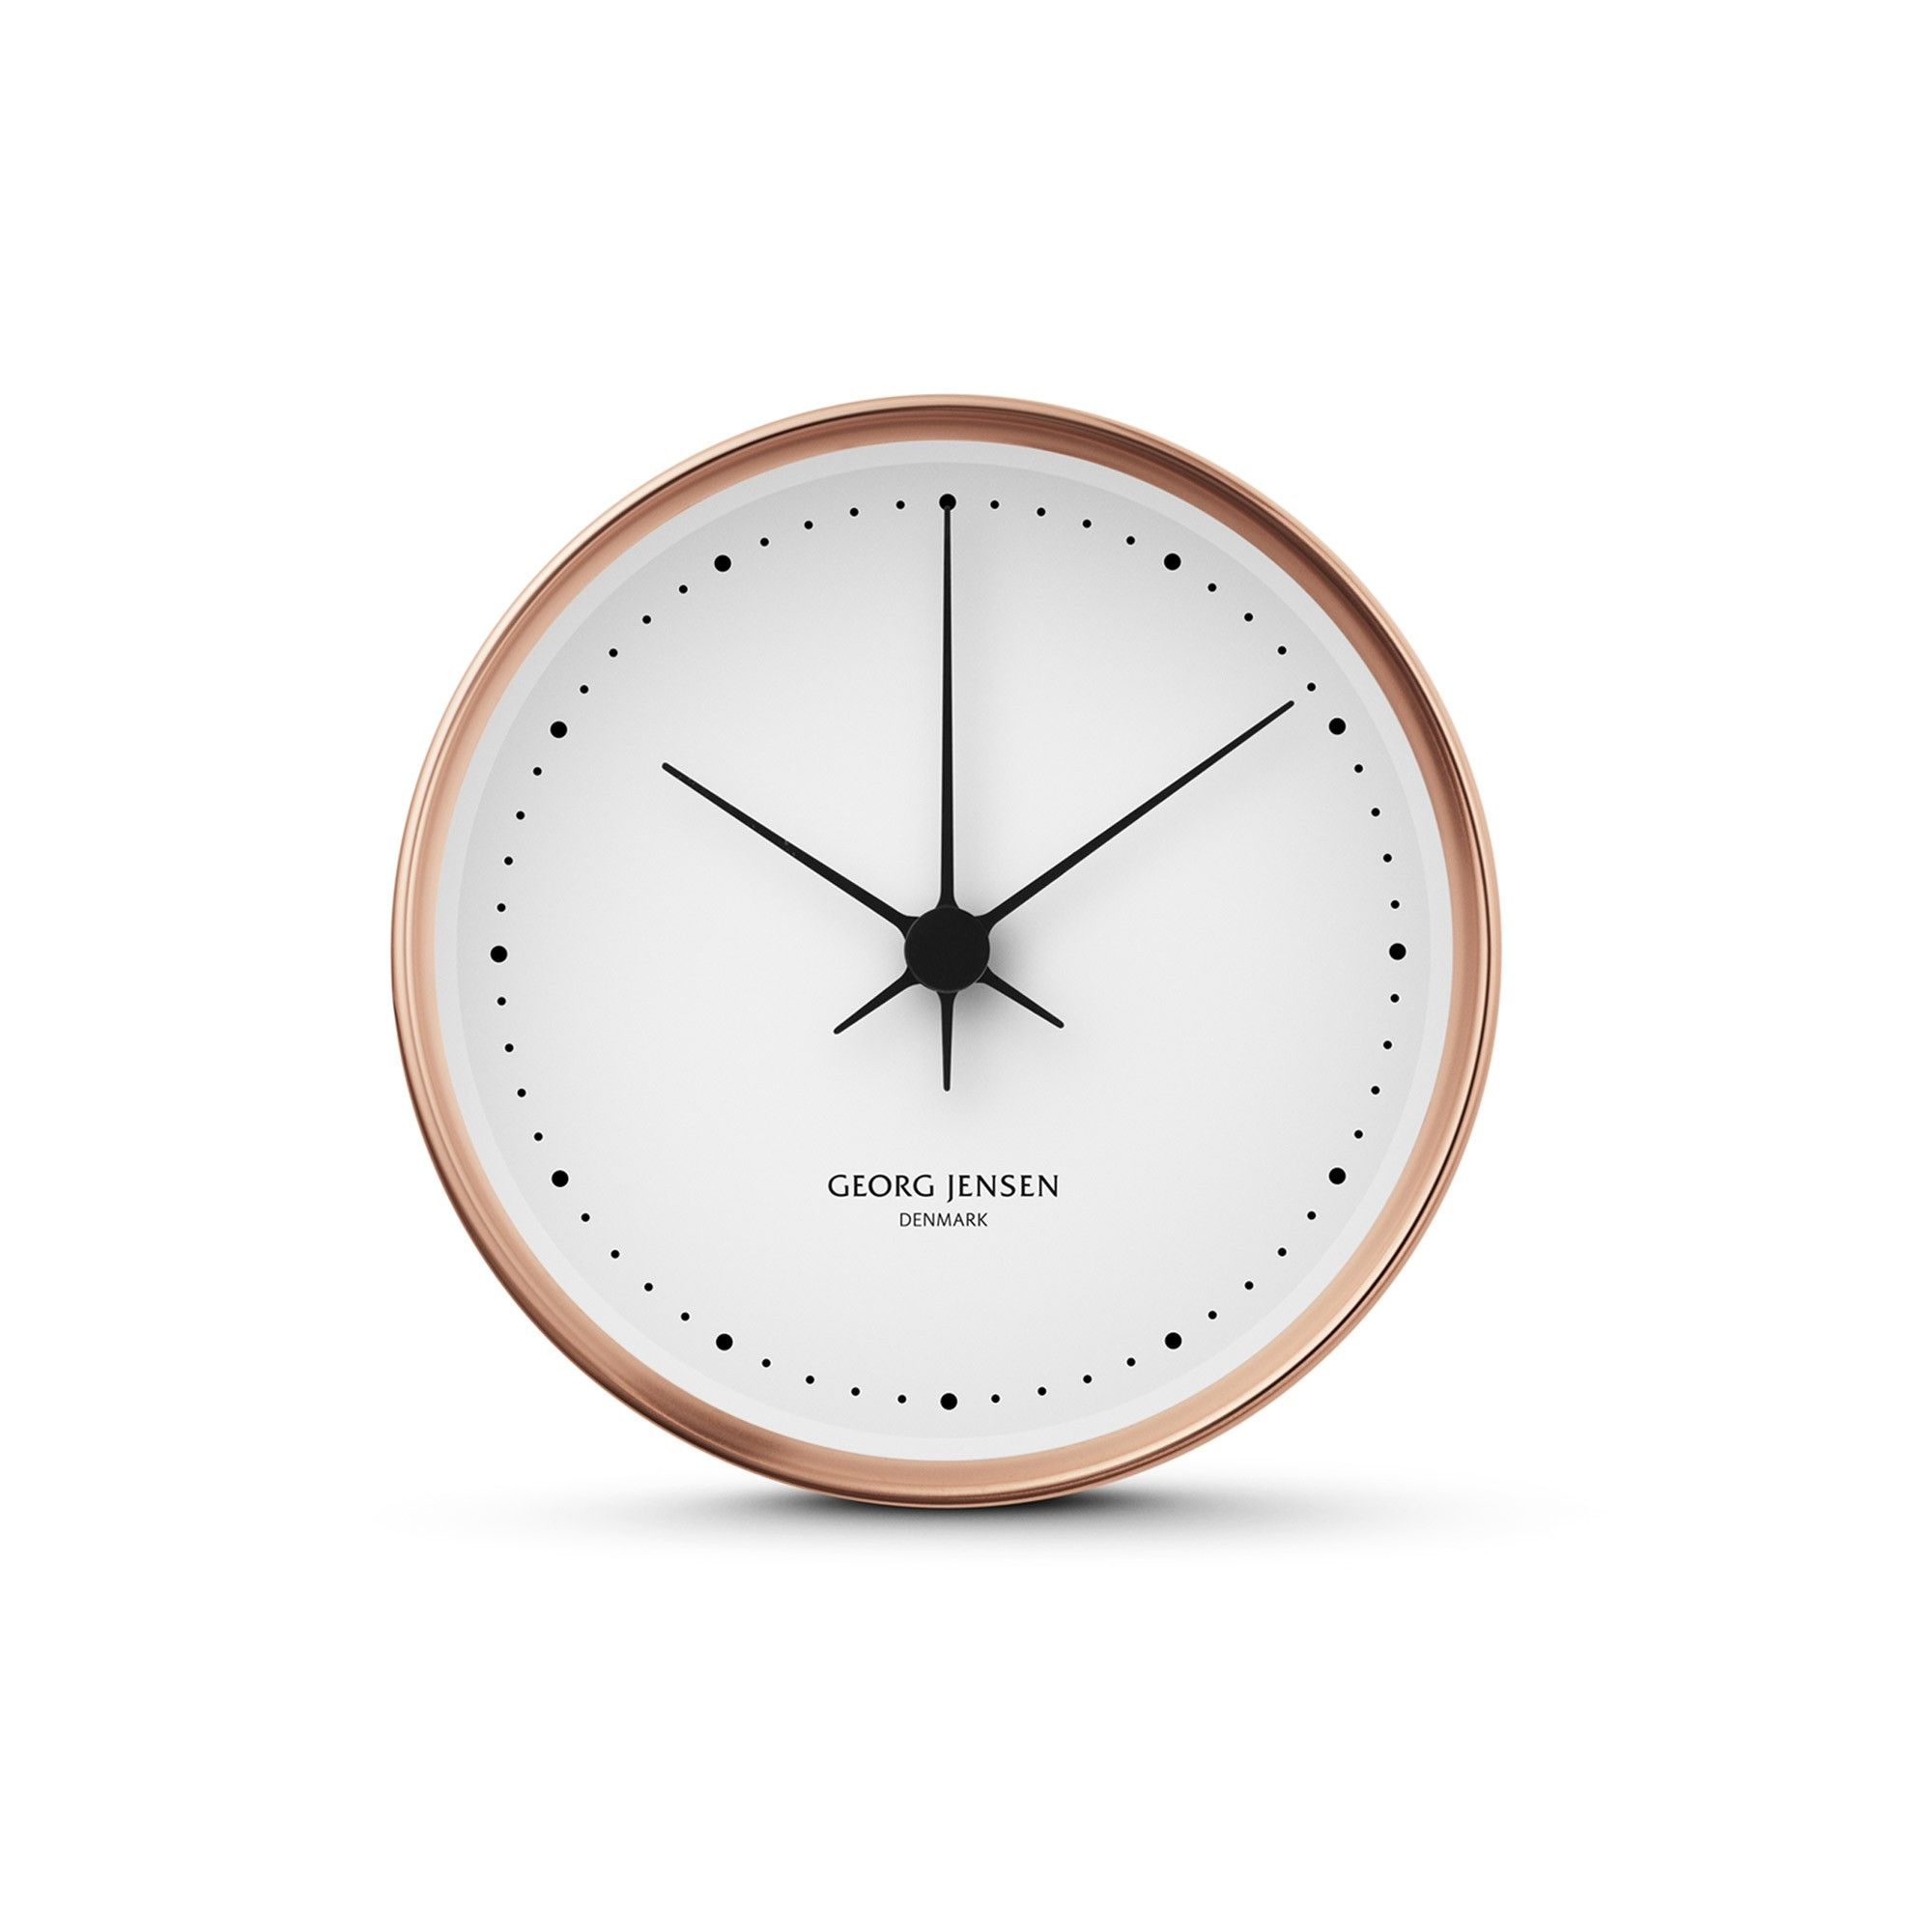 Copperwhite dial koppel wall clock george jensen at skandium danish designer henning koppel created this collection of wall clocks and weather stations for the contemporary modern home who appreciate an understated amipublicfo Choice Image